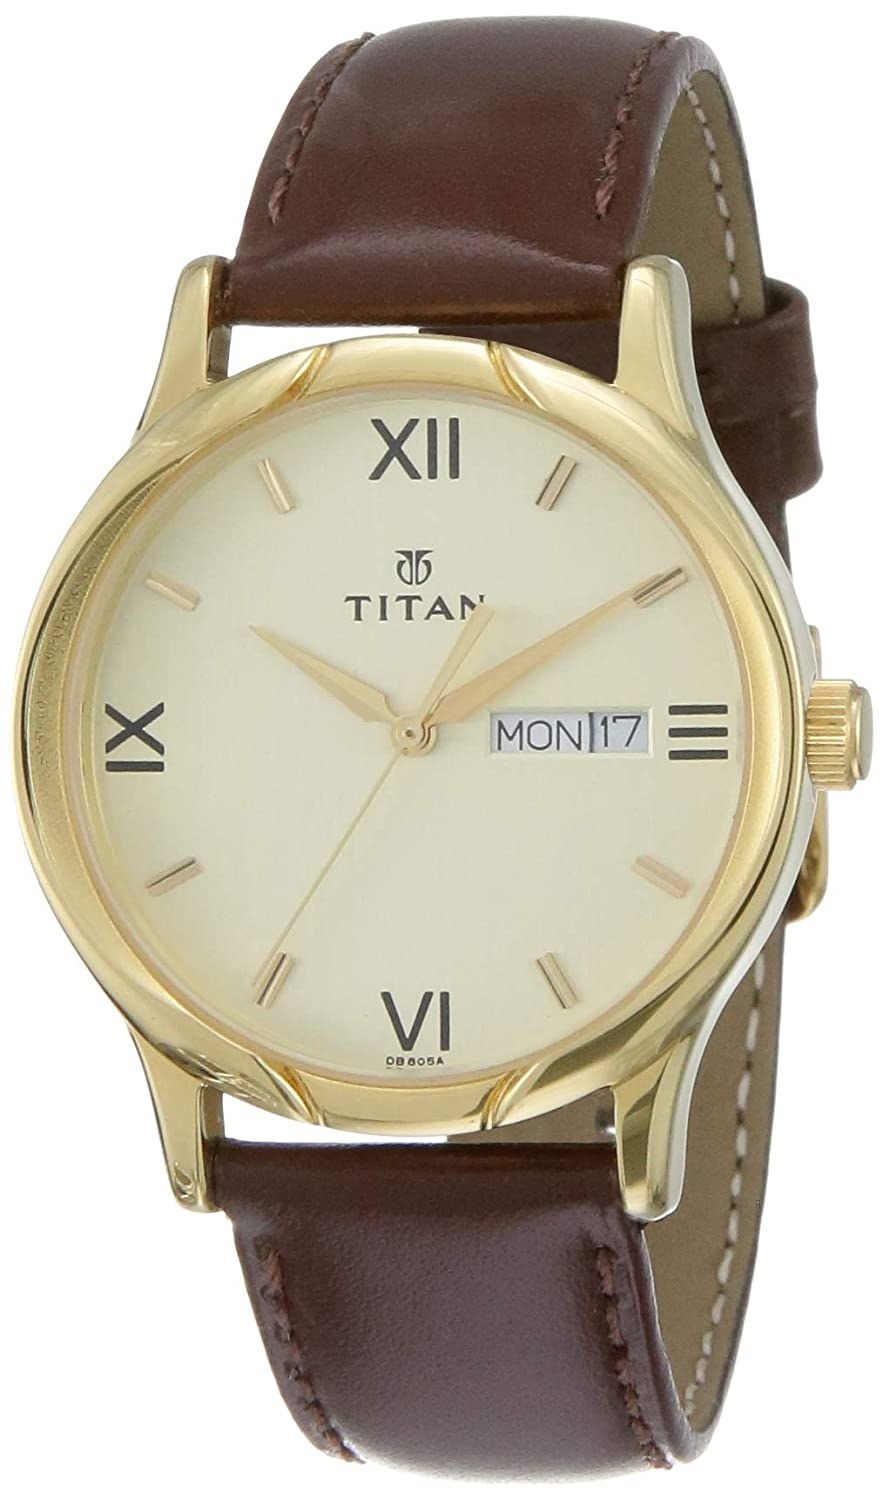 A watch with a brown leather strap and a golden dial